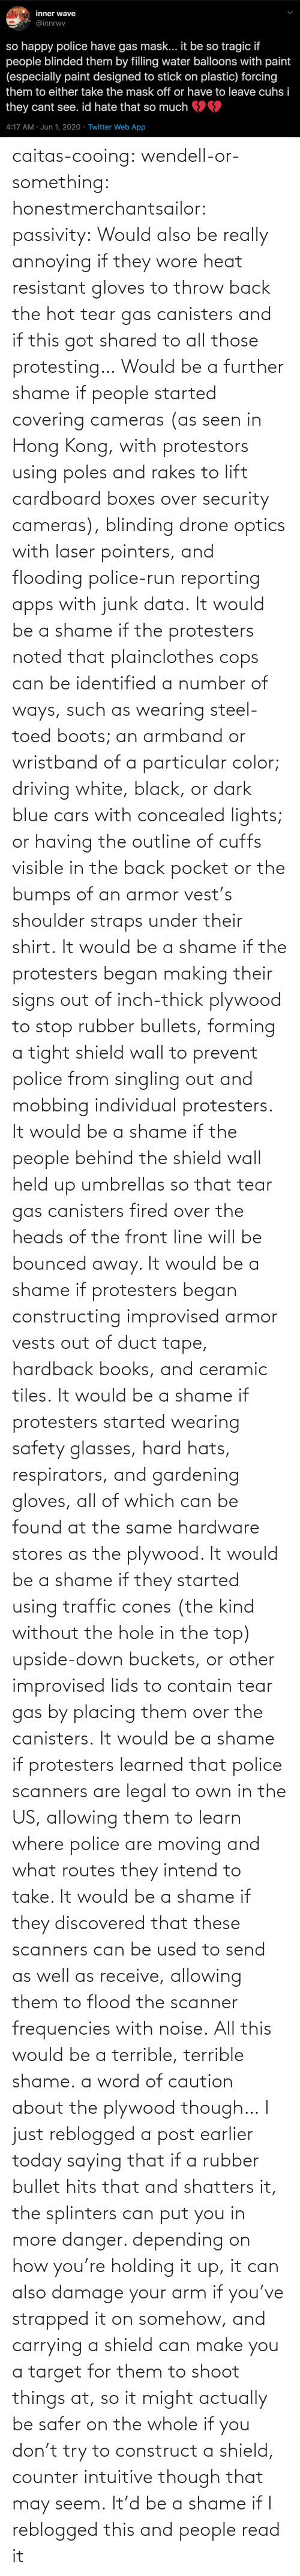 got: caitas-cooing:  wendell-or-something: honestmerchantsailor:  passivity: Would also be really annoying if they wore heat resistant gloves to throw back the hot tear gas canisters and if this got shared to all those protesting… Would be a further shame if people started covering cameras (as seen in Hong Kong, with protestors using poles and rakes to lift cardboard boxes over security cameras), blinding drone optics with laser pointers, and flooding police-run reporting apps with junk data. It would be a shame if the protesters noted that plainclothes cops can be identified a number of ways, such as wearing steel-toed boots; an armband or wristband of a particular color; driving white, black, or dark blue cars with concealed lights; or having the outline of cuffs visible in the back pocket or the bumps of an armor vest's shoulder straps under their shirt. It would be a shame if the protesters began making their signs out of inch-thick plywood to stop rubber bullets, forming a tight shield wall to prevent police from singling out and mobbing individual protesters. It would be a shame if the people behind the shield wall held up umbrellas so that tear gas canisters fired over the heads of the front line will be bounced away. It would be a shame if protesters began constructing improvised armor vests out of duct tape, hardback books, and ceramic tiles. It would be a shame if protesters started wearing safety glasses, hard hats, respirators, and gardening gloves, all of which can be found at the same hardware stores as the plywood. It would be a shame if they started using traffic cones (the kind without the hole in the top) upside-down buckets, or other improvised lids to contain tear gas by placing them over the canisters. It would be a shame if protesters learned that police scanners are legal to own in the US, allowing them to learn where police are moving and what routes they intend to take. It would be a shame if they discovered that these scanners can be used to send as well as receive, allowing them to flood the scanner frequencies with noise. All this would be a terrible, terrible shame.    a word of caution about the plywood though… I just reblogged a post earlier today saying that if a rubber bullet hits that and shatters it, the splinters can put you in more danger. depending on how you're holding it up, it can also damage your arm if you've strapped it on somehow, and carrying a shield can make you a target for them to shoot things at, so it might actually be safer on the whole if you don't try to construct a shield, counter intuitive though that may seem.    It'd be a shame if I reblogged this and people read it